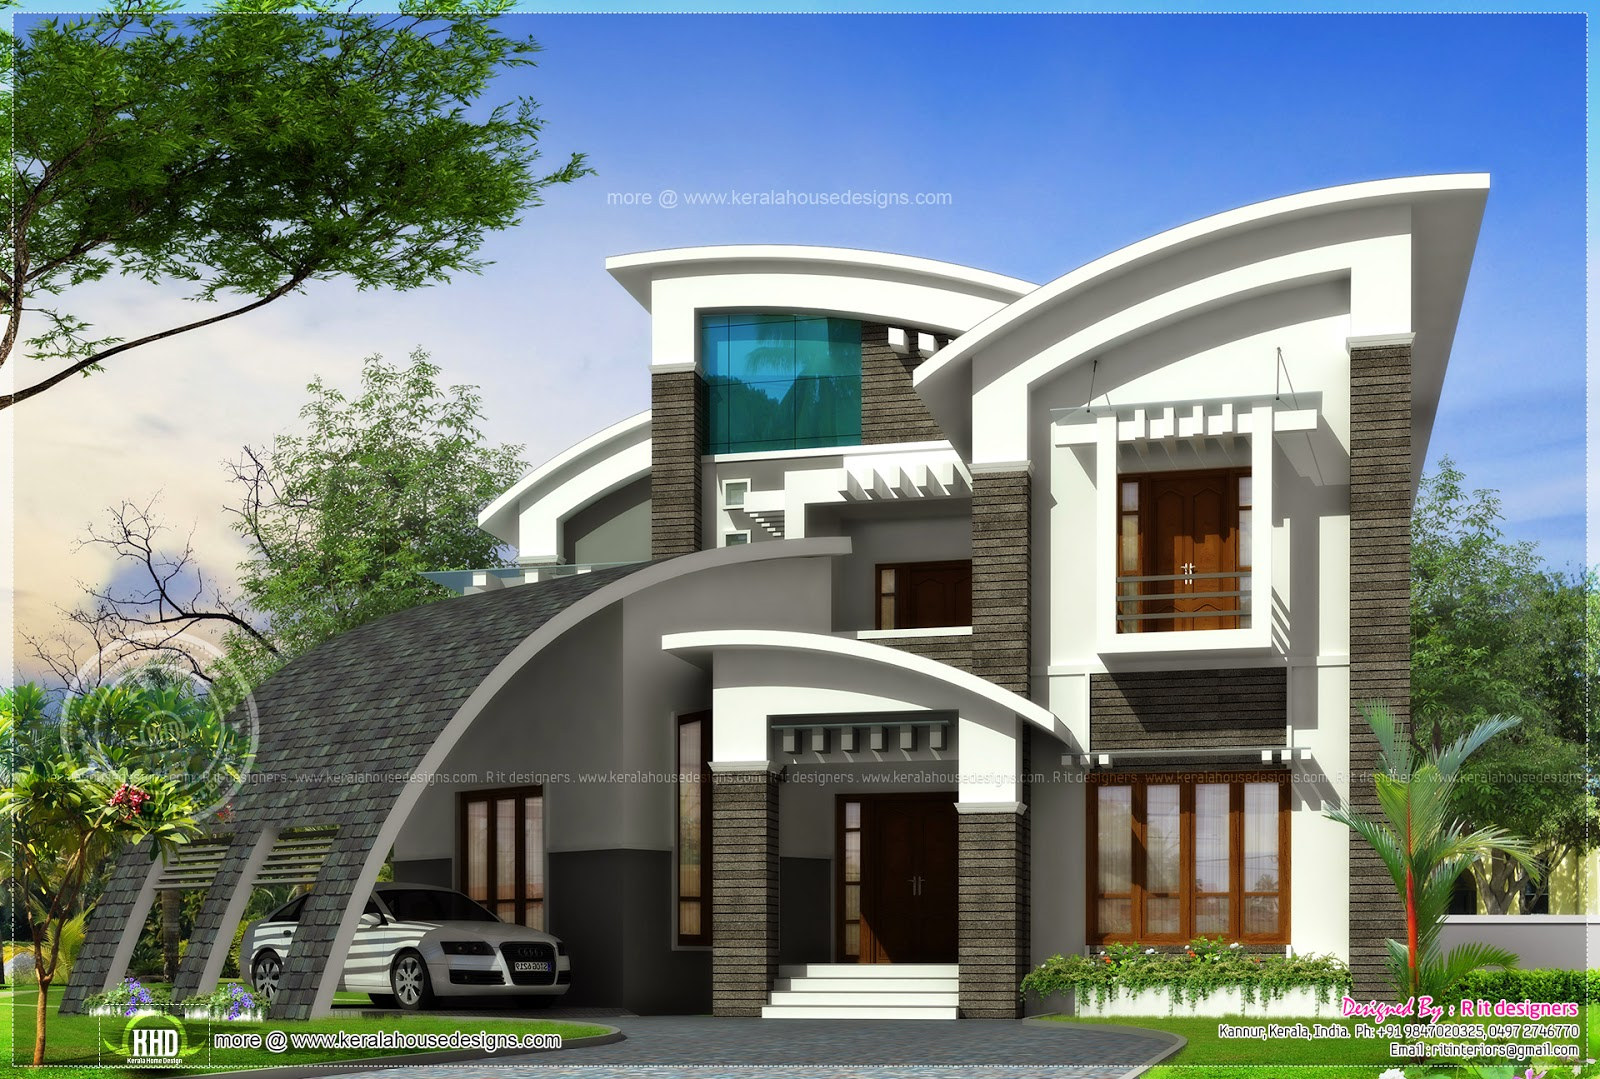 Super luxury ultra modern house design kerala home for Modern luxury villa design